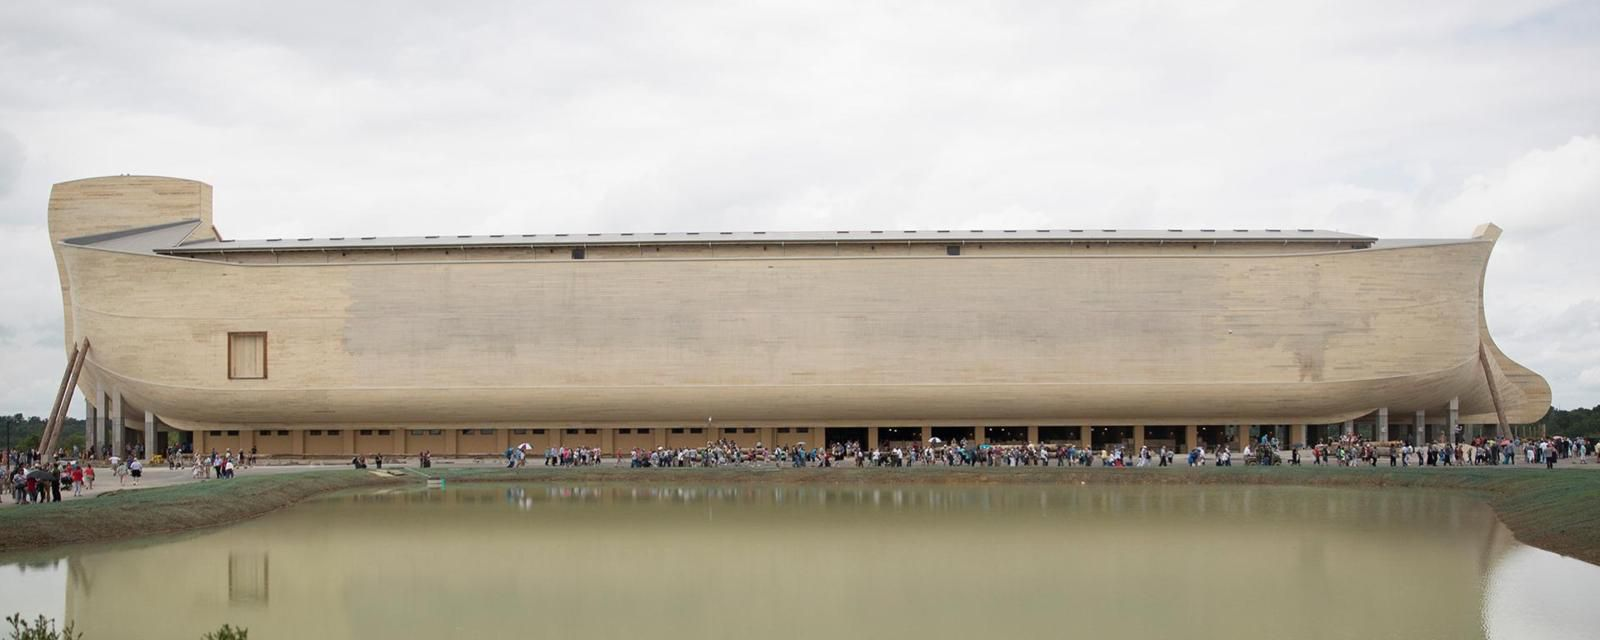 Giant Noah's Ark Built By Kentucky Creationists For $100 Million